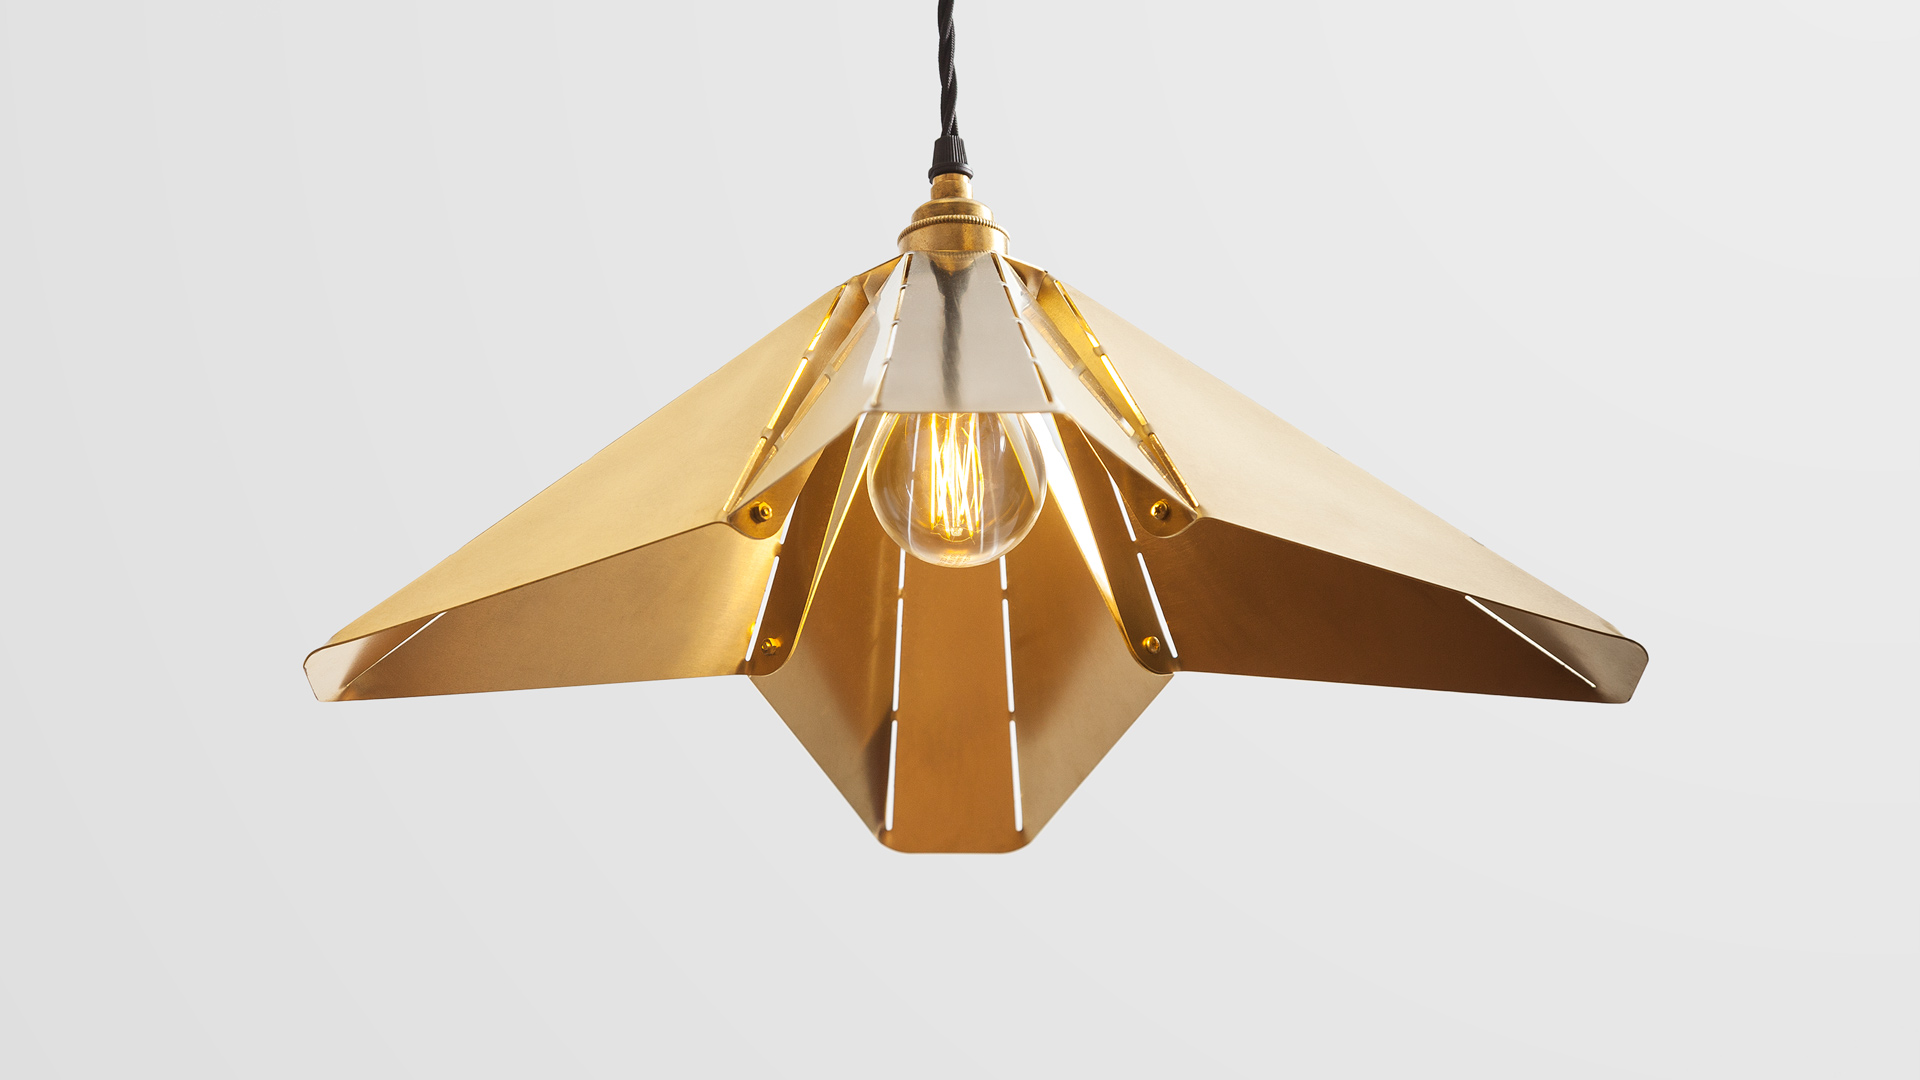 Coated Mild Steel As Well Bespoke Colours Of Your Choice Which Means This Designer Pendant Lighting Can Fit In A Variety Commercial Interiors